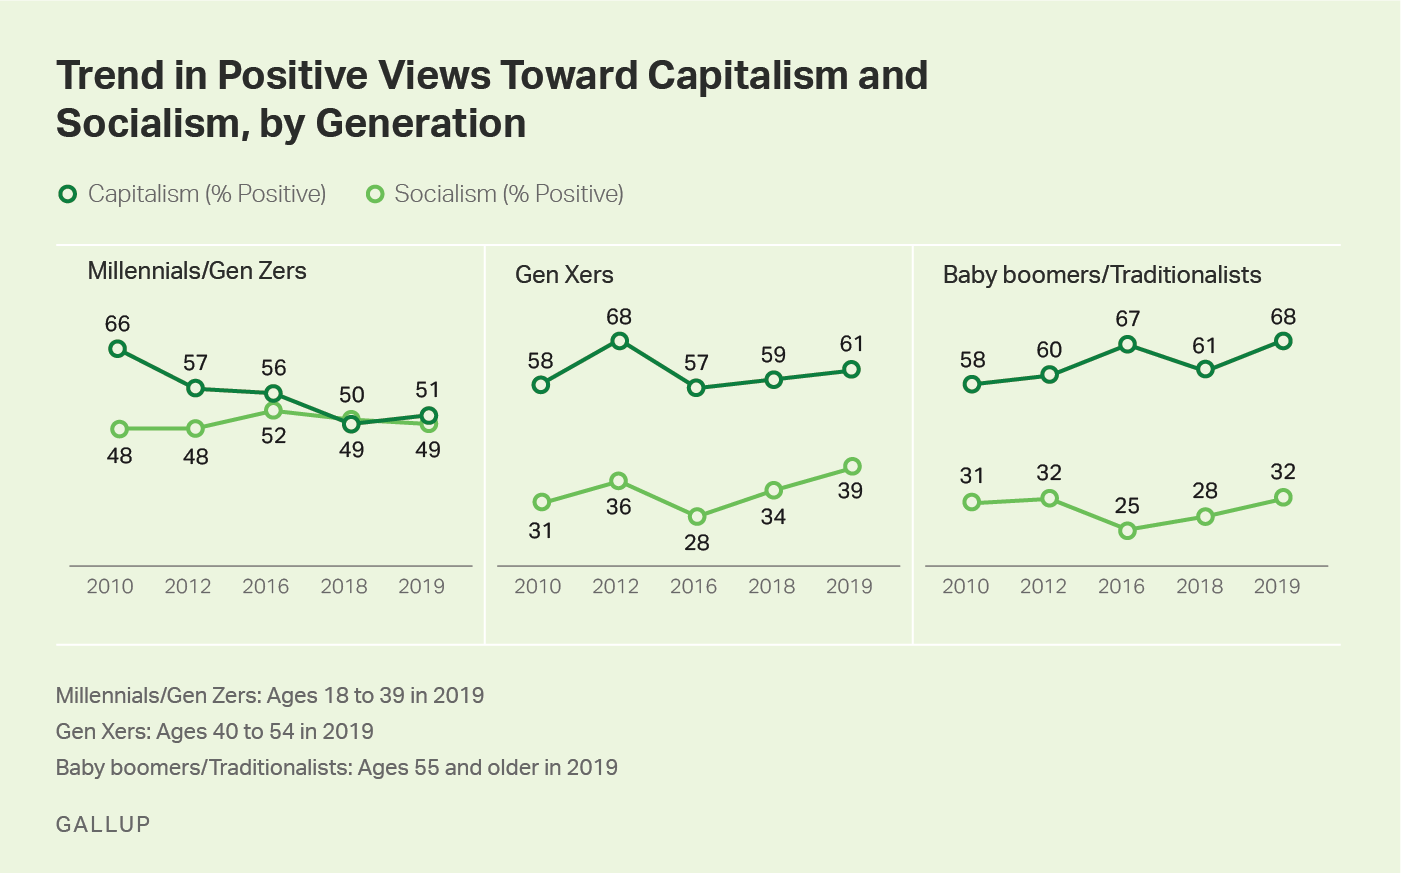 Three line graphs showing 2010-2019 trends in positive ratings for capitalism and socialism, by generational group.